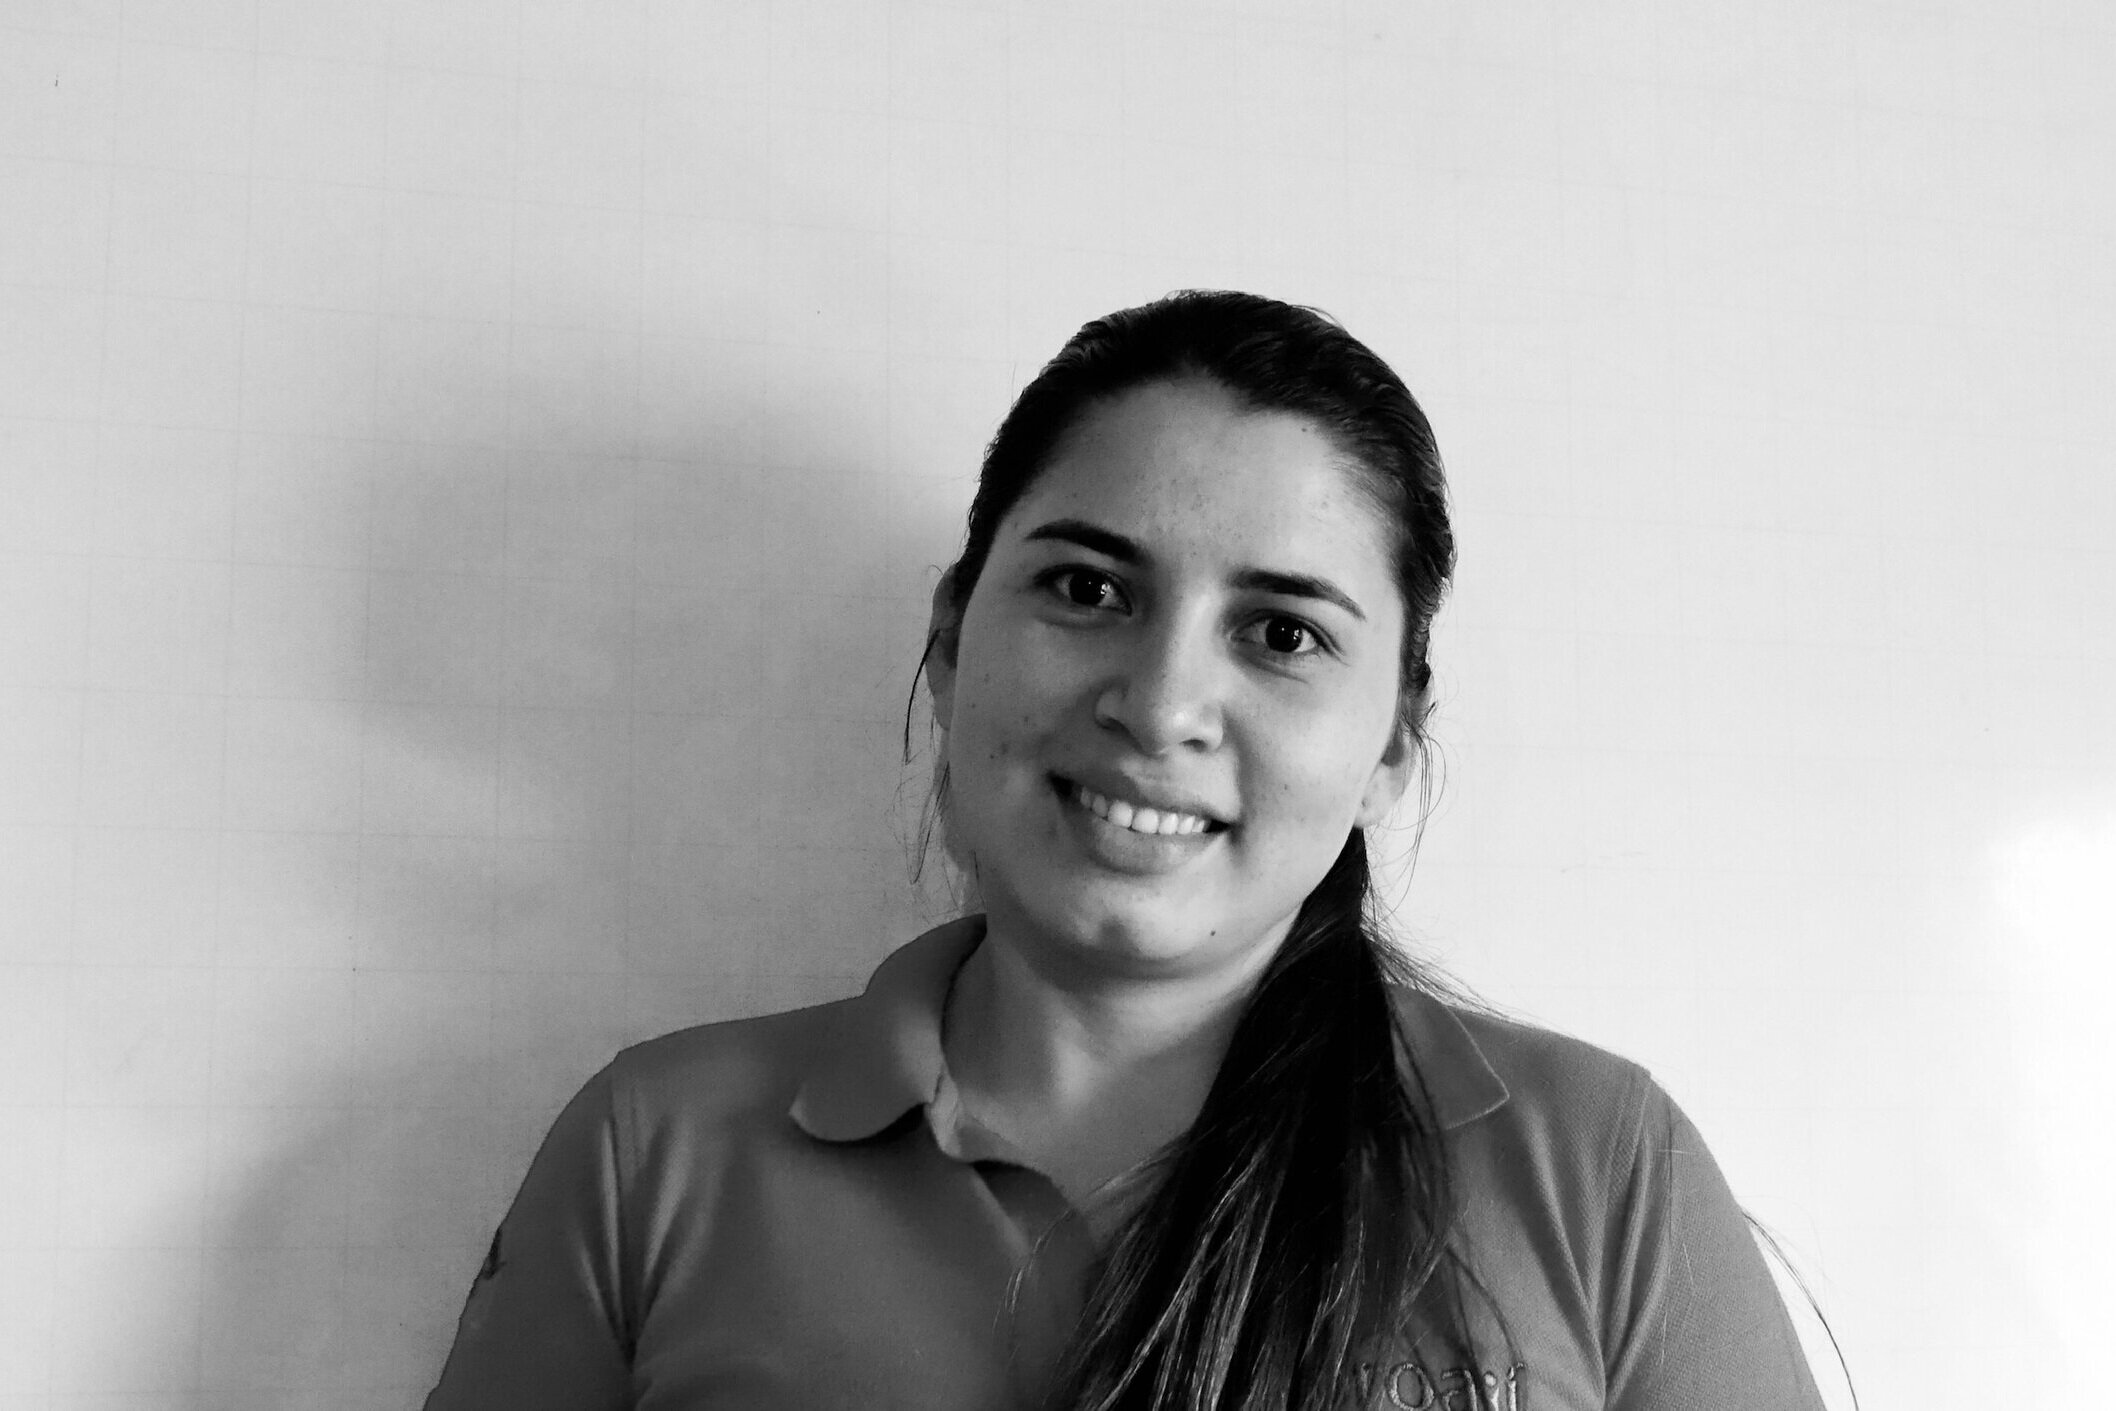 Tania Escobar - Plant Manager | since 2013Tania started working in Proaji as an intern and is now our plant manager. She is in charge of all projects and activities in our processing plant. She is detailed oriented and demands our best each and every day, while also encouraging us to grow and improve professionally. In her free time she likes playing basketball and boxing.